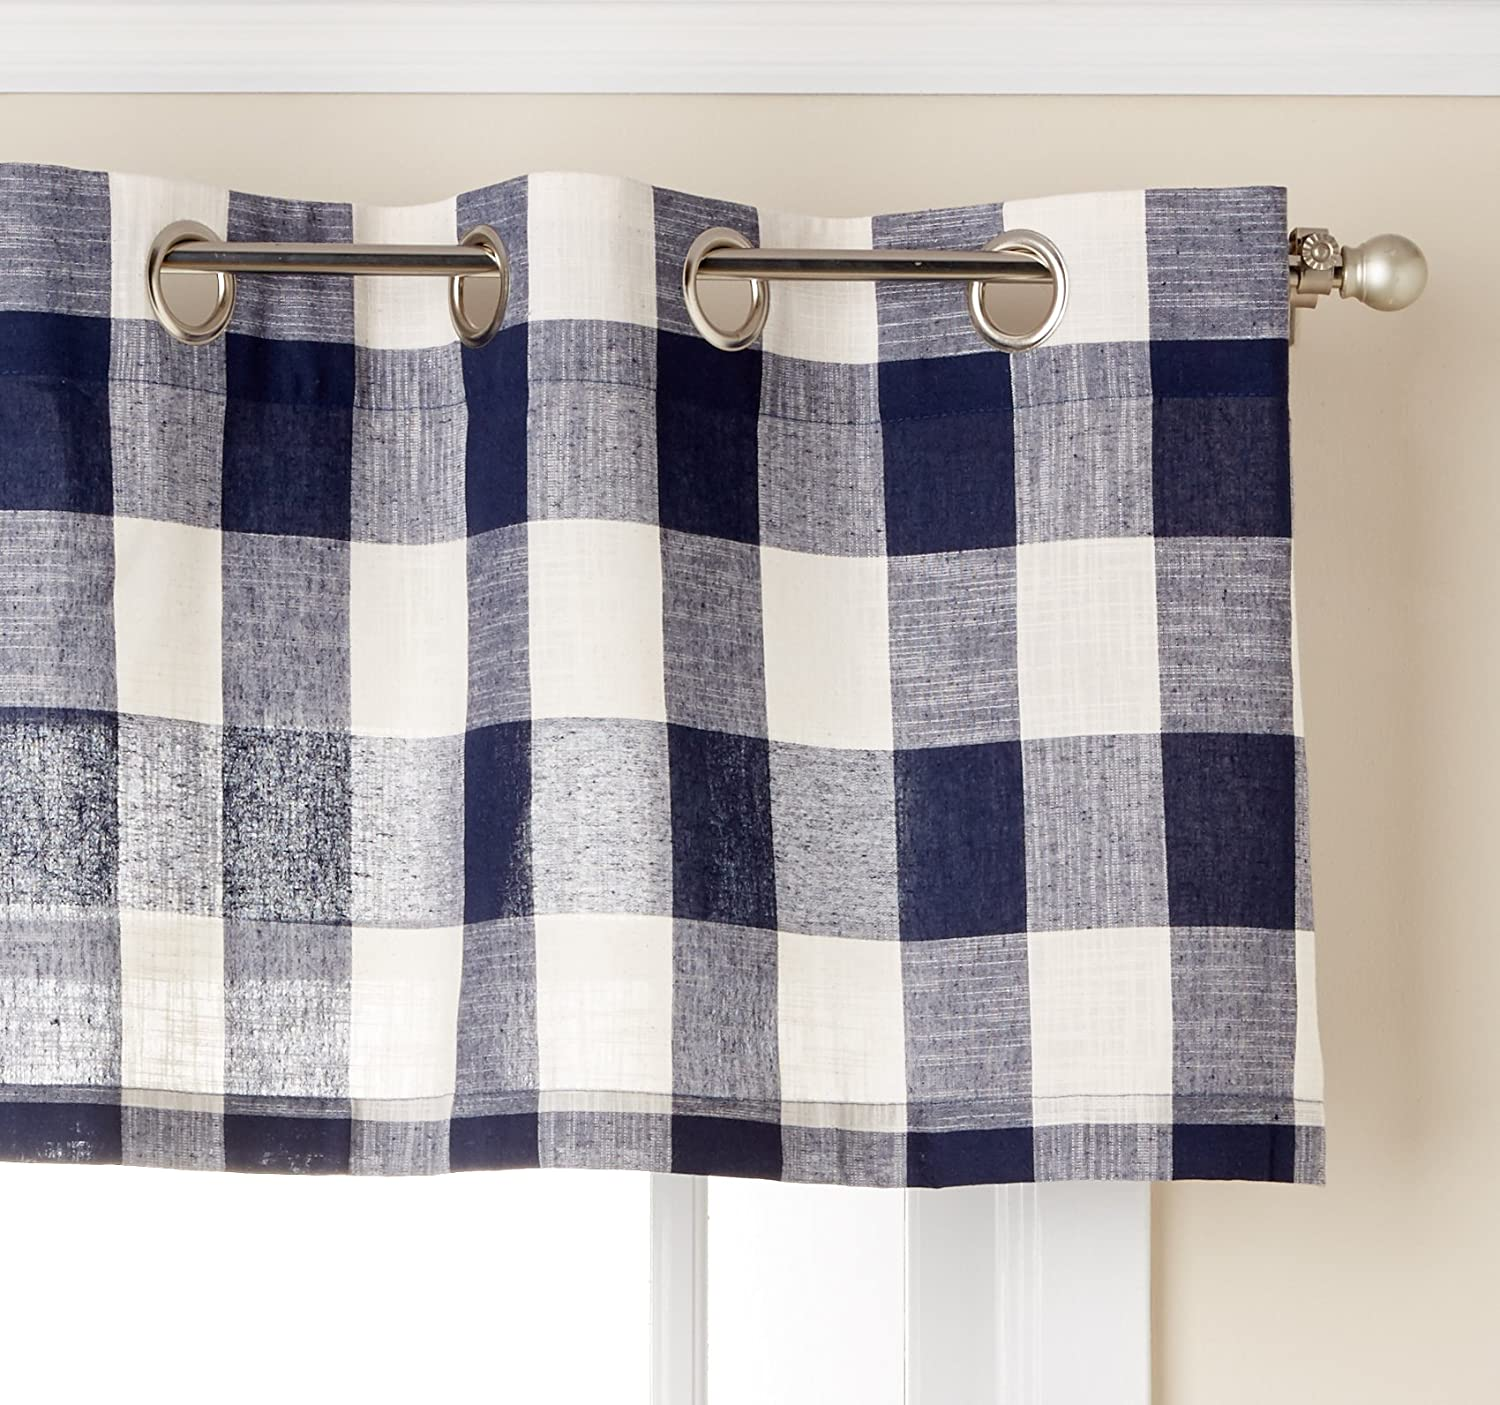 Lorraine Home Fashions 09570-V-00146 BLACK Courtyard Grommet Window Curtain Valance, Black, 53 X 18 53 X 18